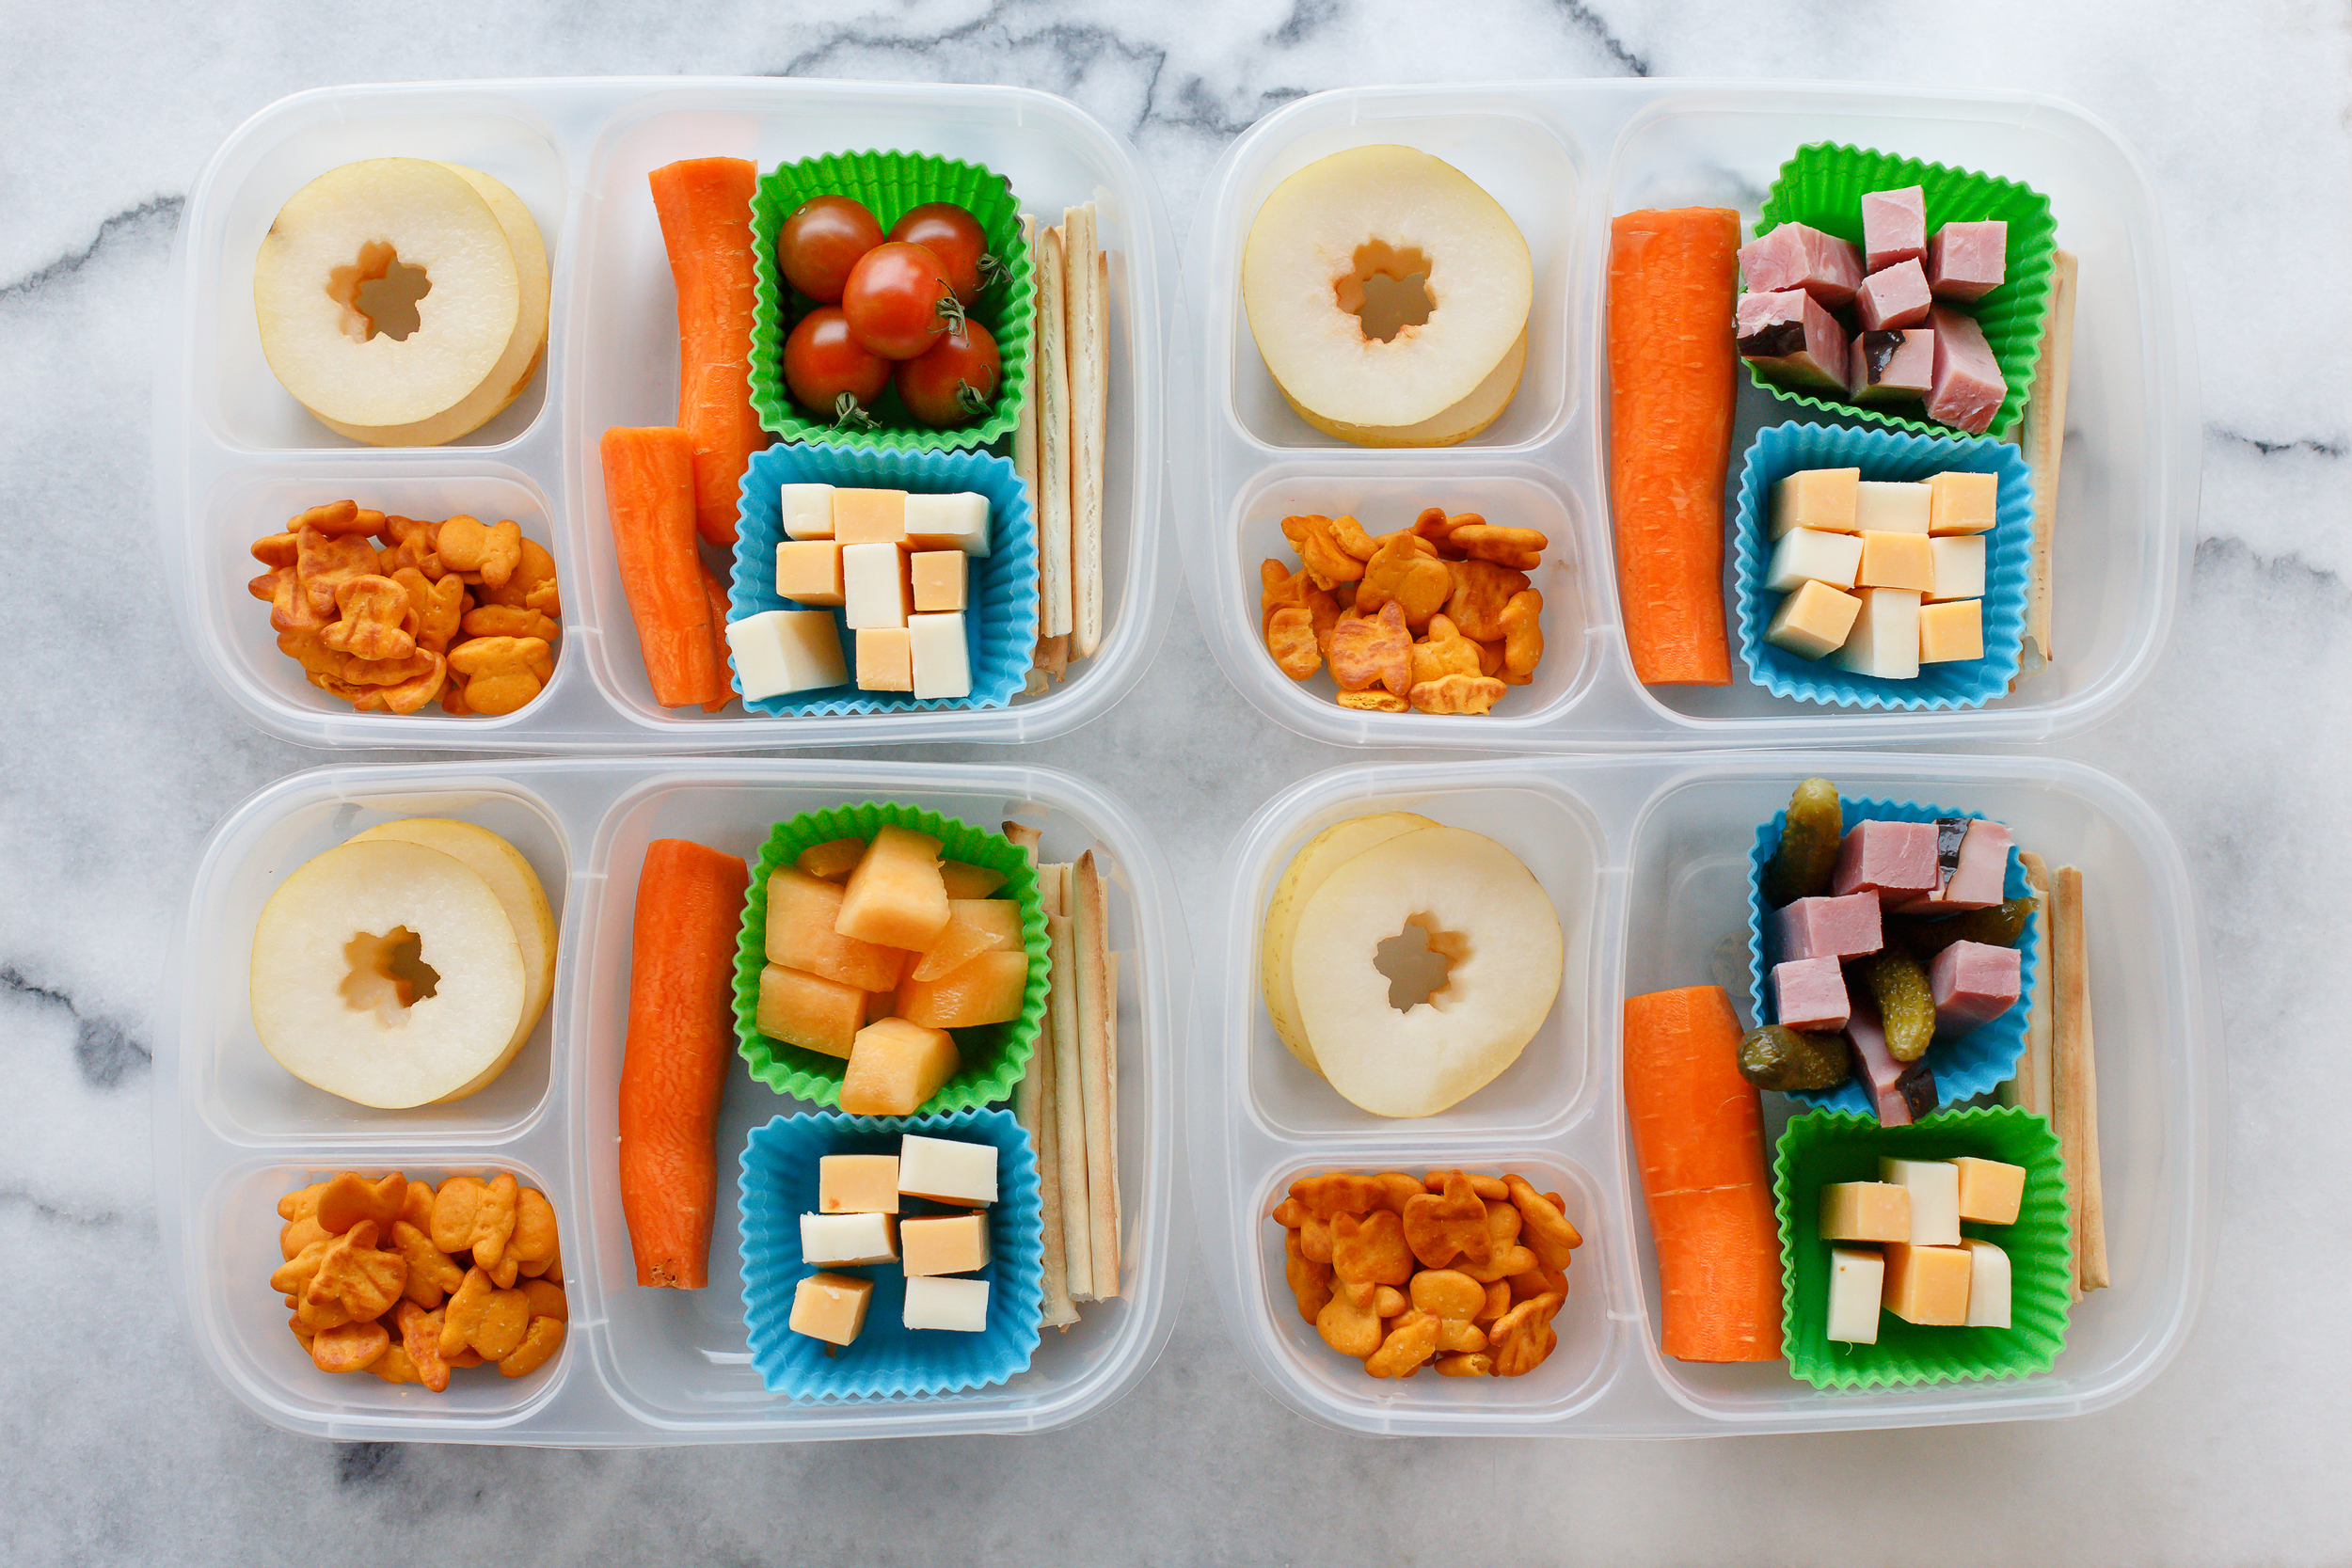 Tuesday lunch: sticks of cheese and ham. One has pickles, one has melon, one has tomatoes from the garden. With a big carrot, cheddar cows, and slices of pear.